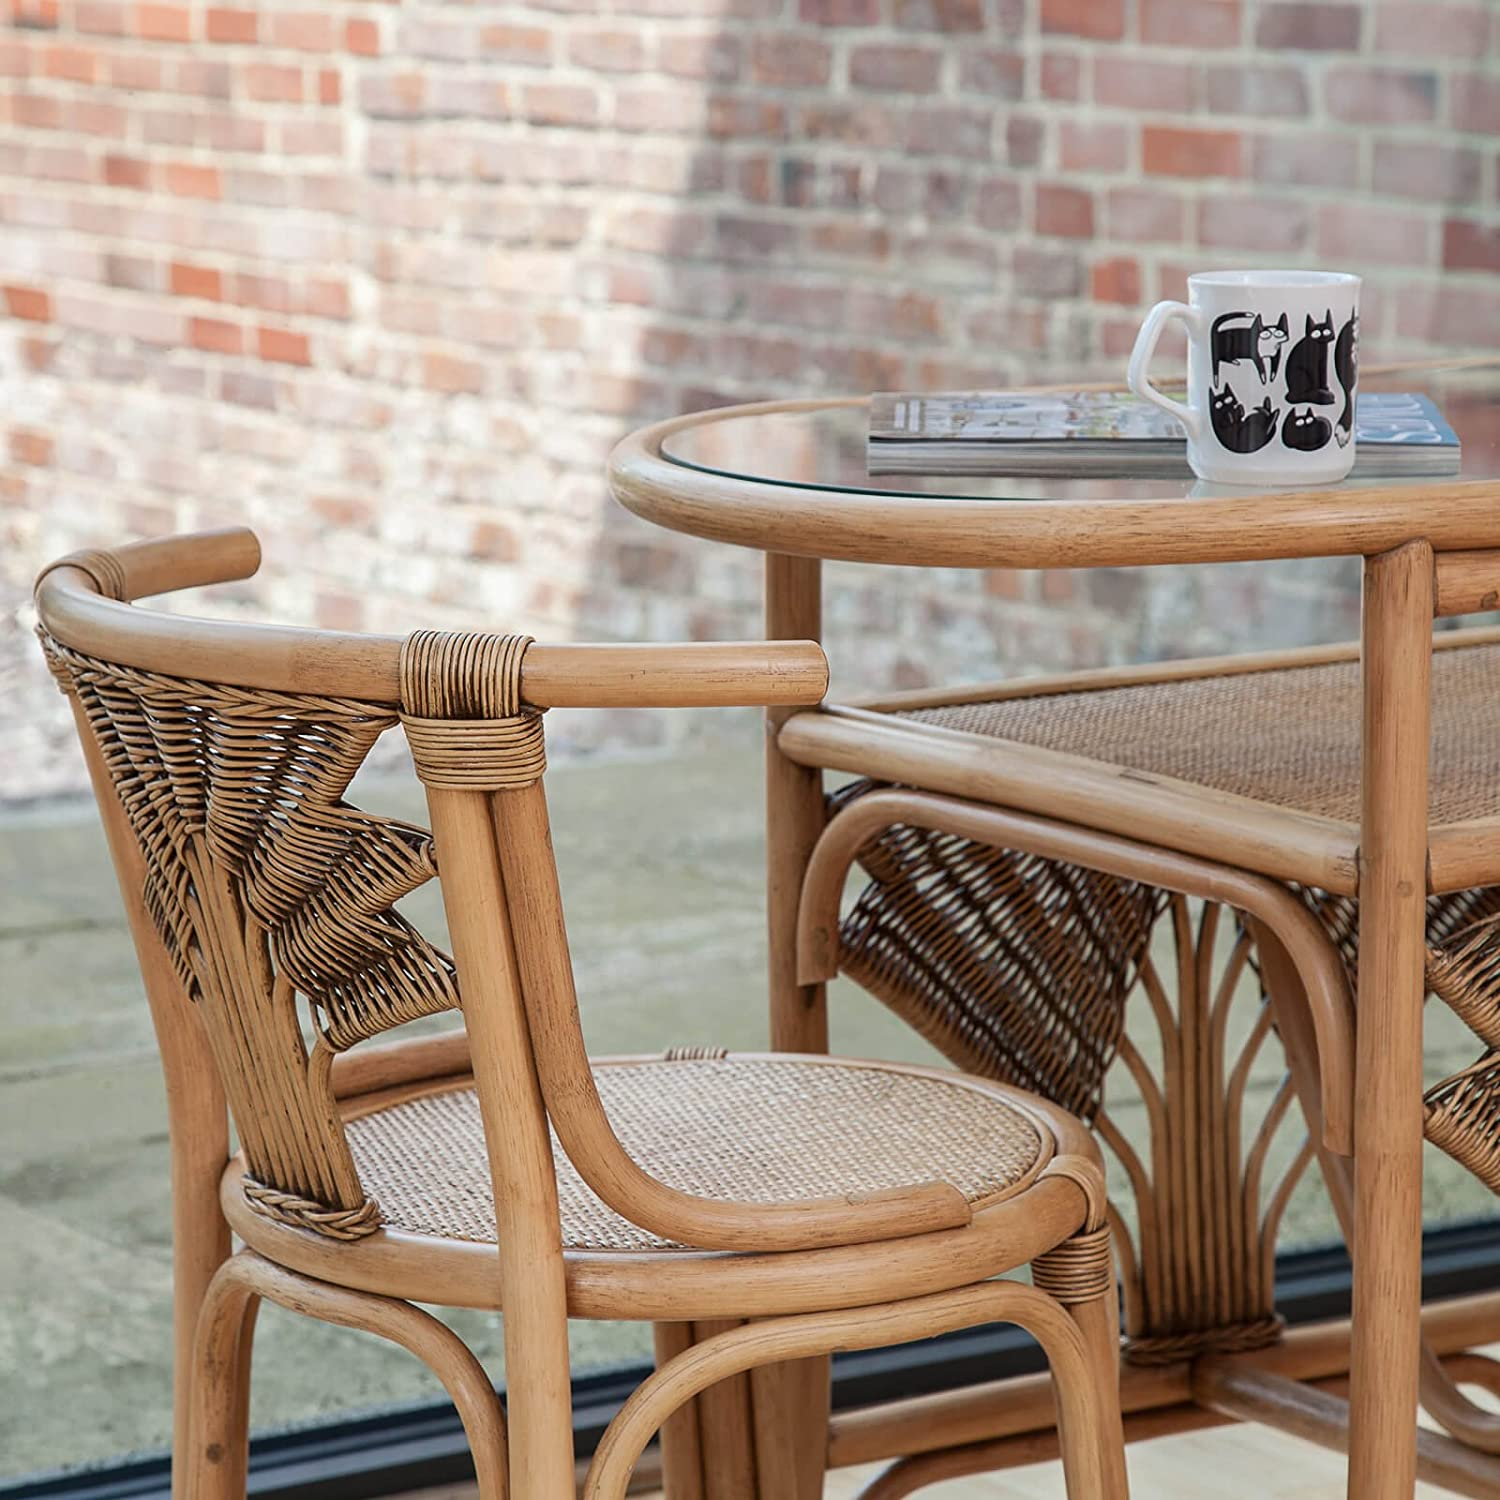 Atlanta Cane Wicker Dining Breakfast Table Chair Set for 2: Amazon ...